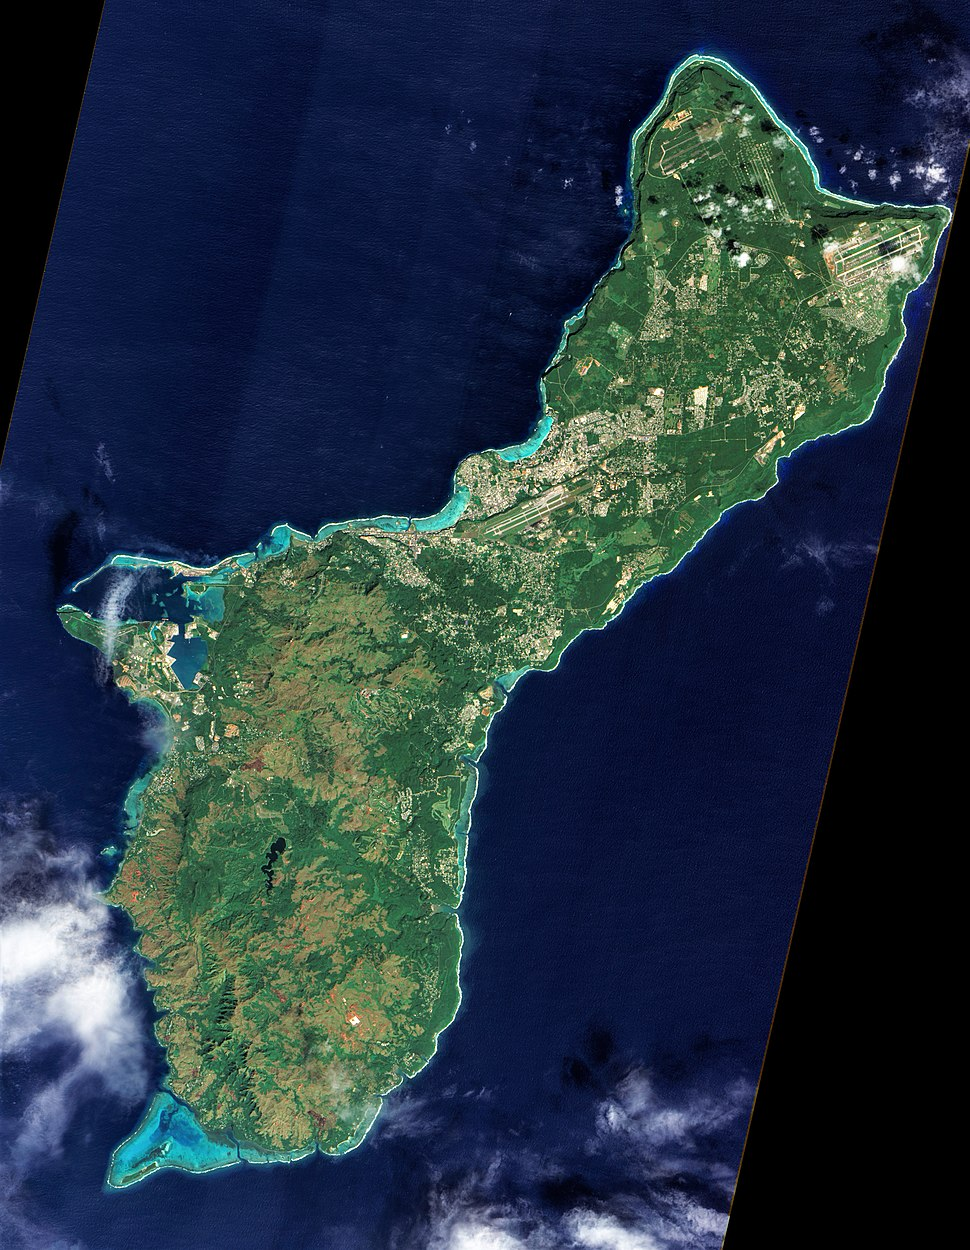 An unobstructed view of the island of Guam from NASA's Earth Observing-1 satellite